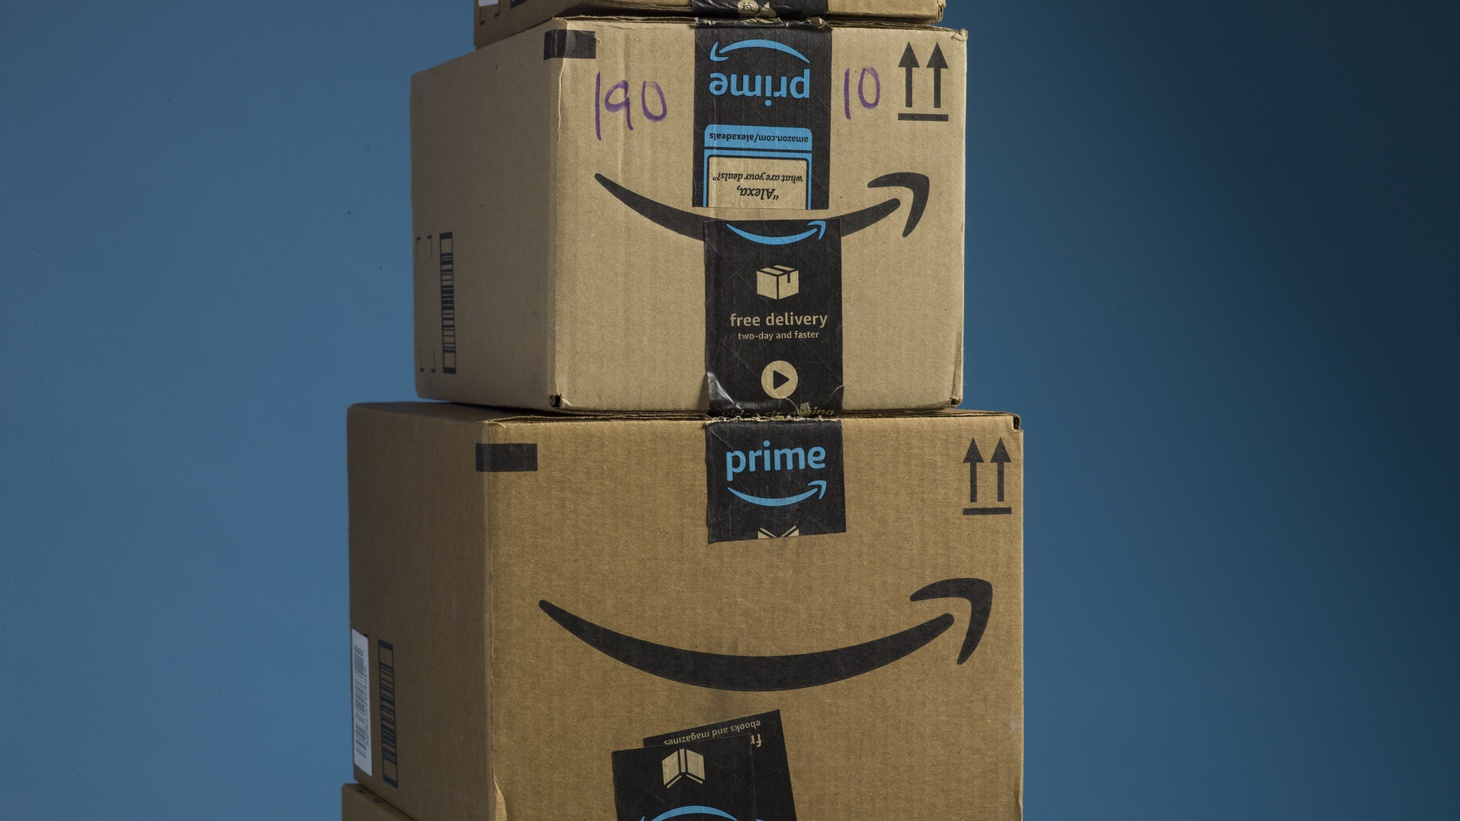 Amazon Prime packages.